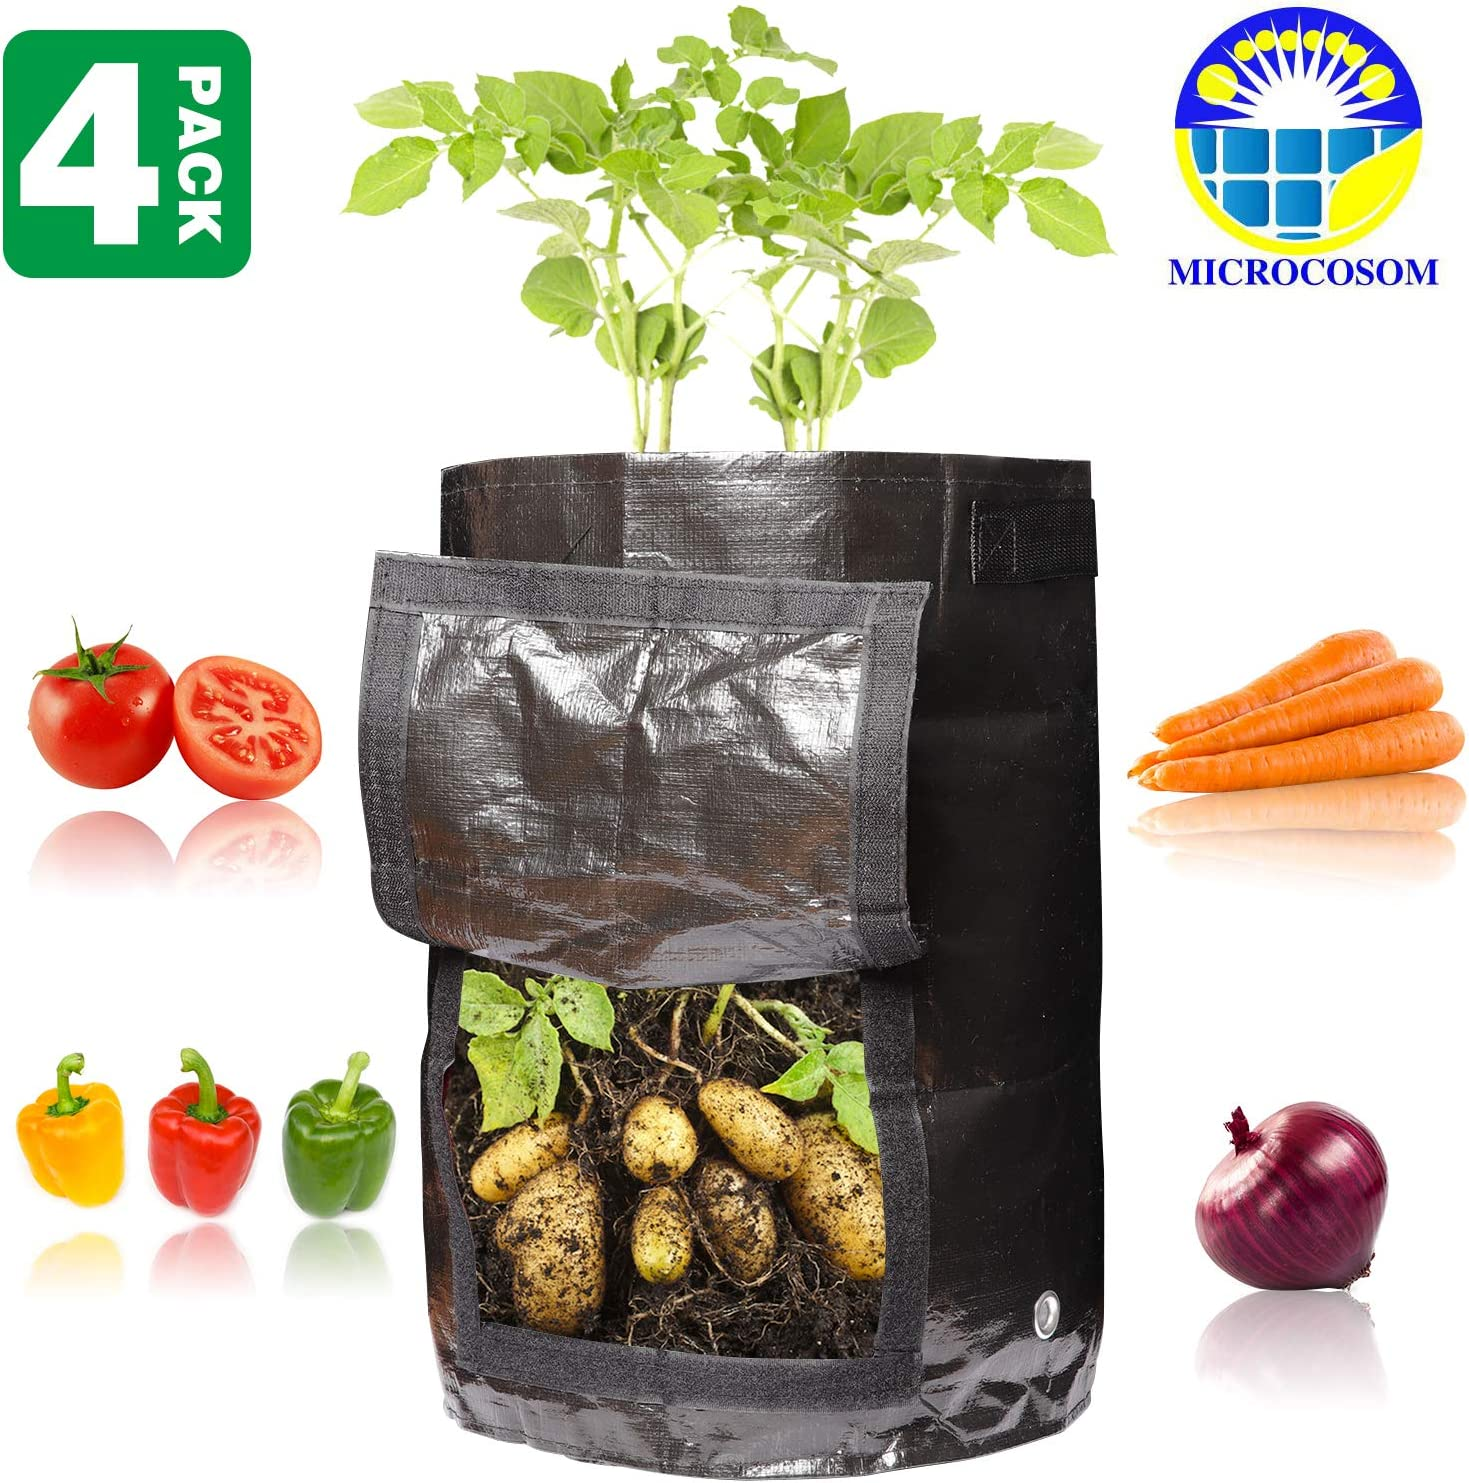 Microcosom Potato Vegetable Planter Grow Bags 10 Gallon with Handles and Easy to Open Access Flap, Potato Vegetable Planter Grow Bag, 4-Pack 10 Gallon Smart Grow Bags for Potato Plant